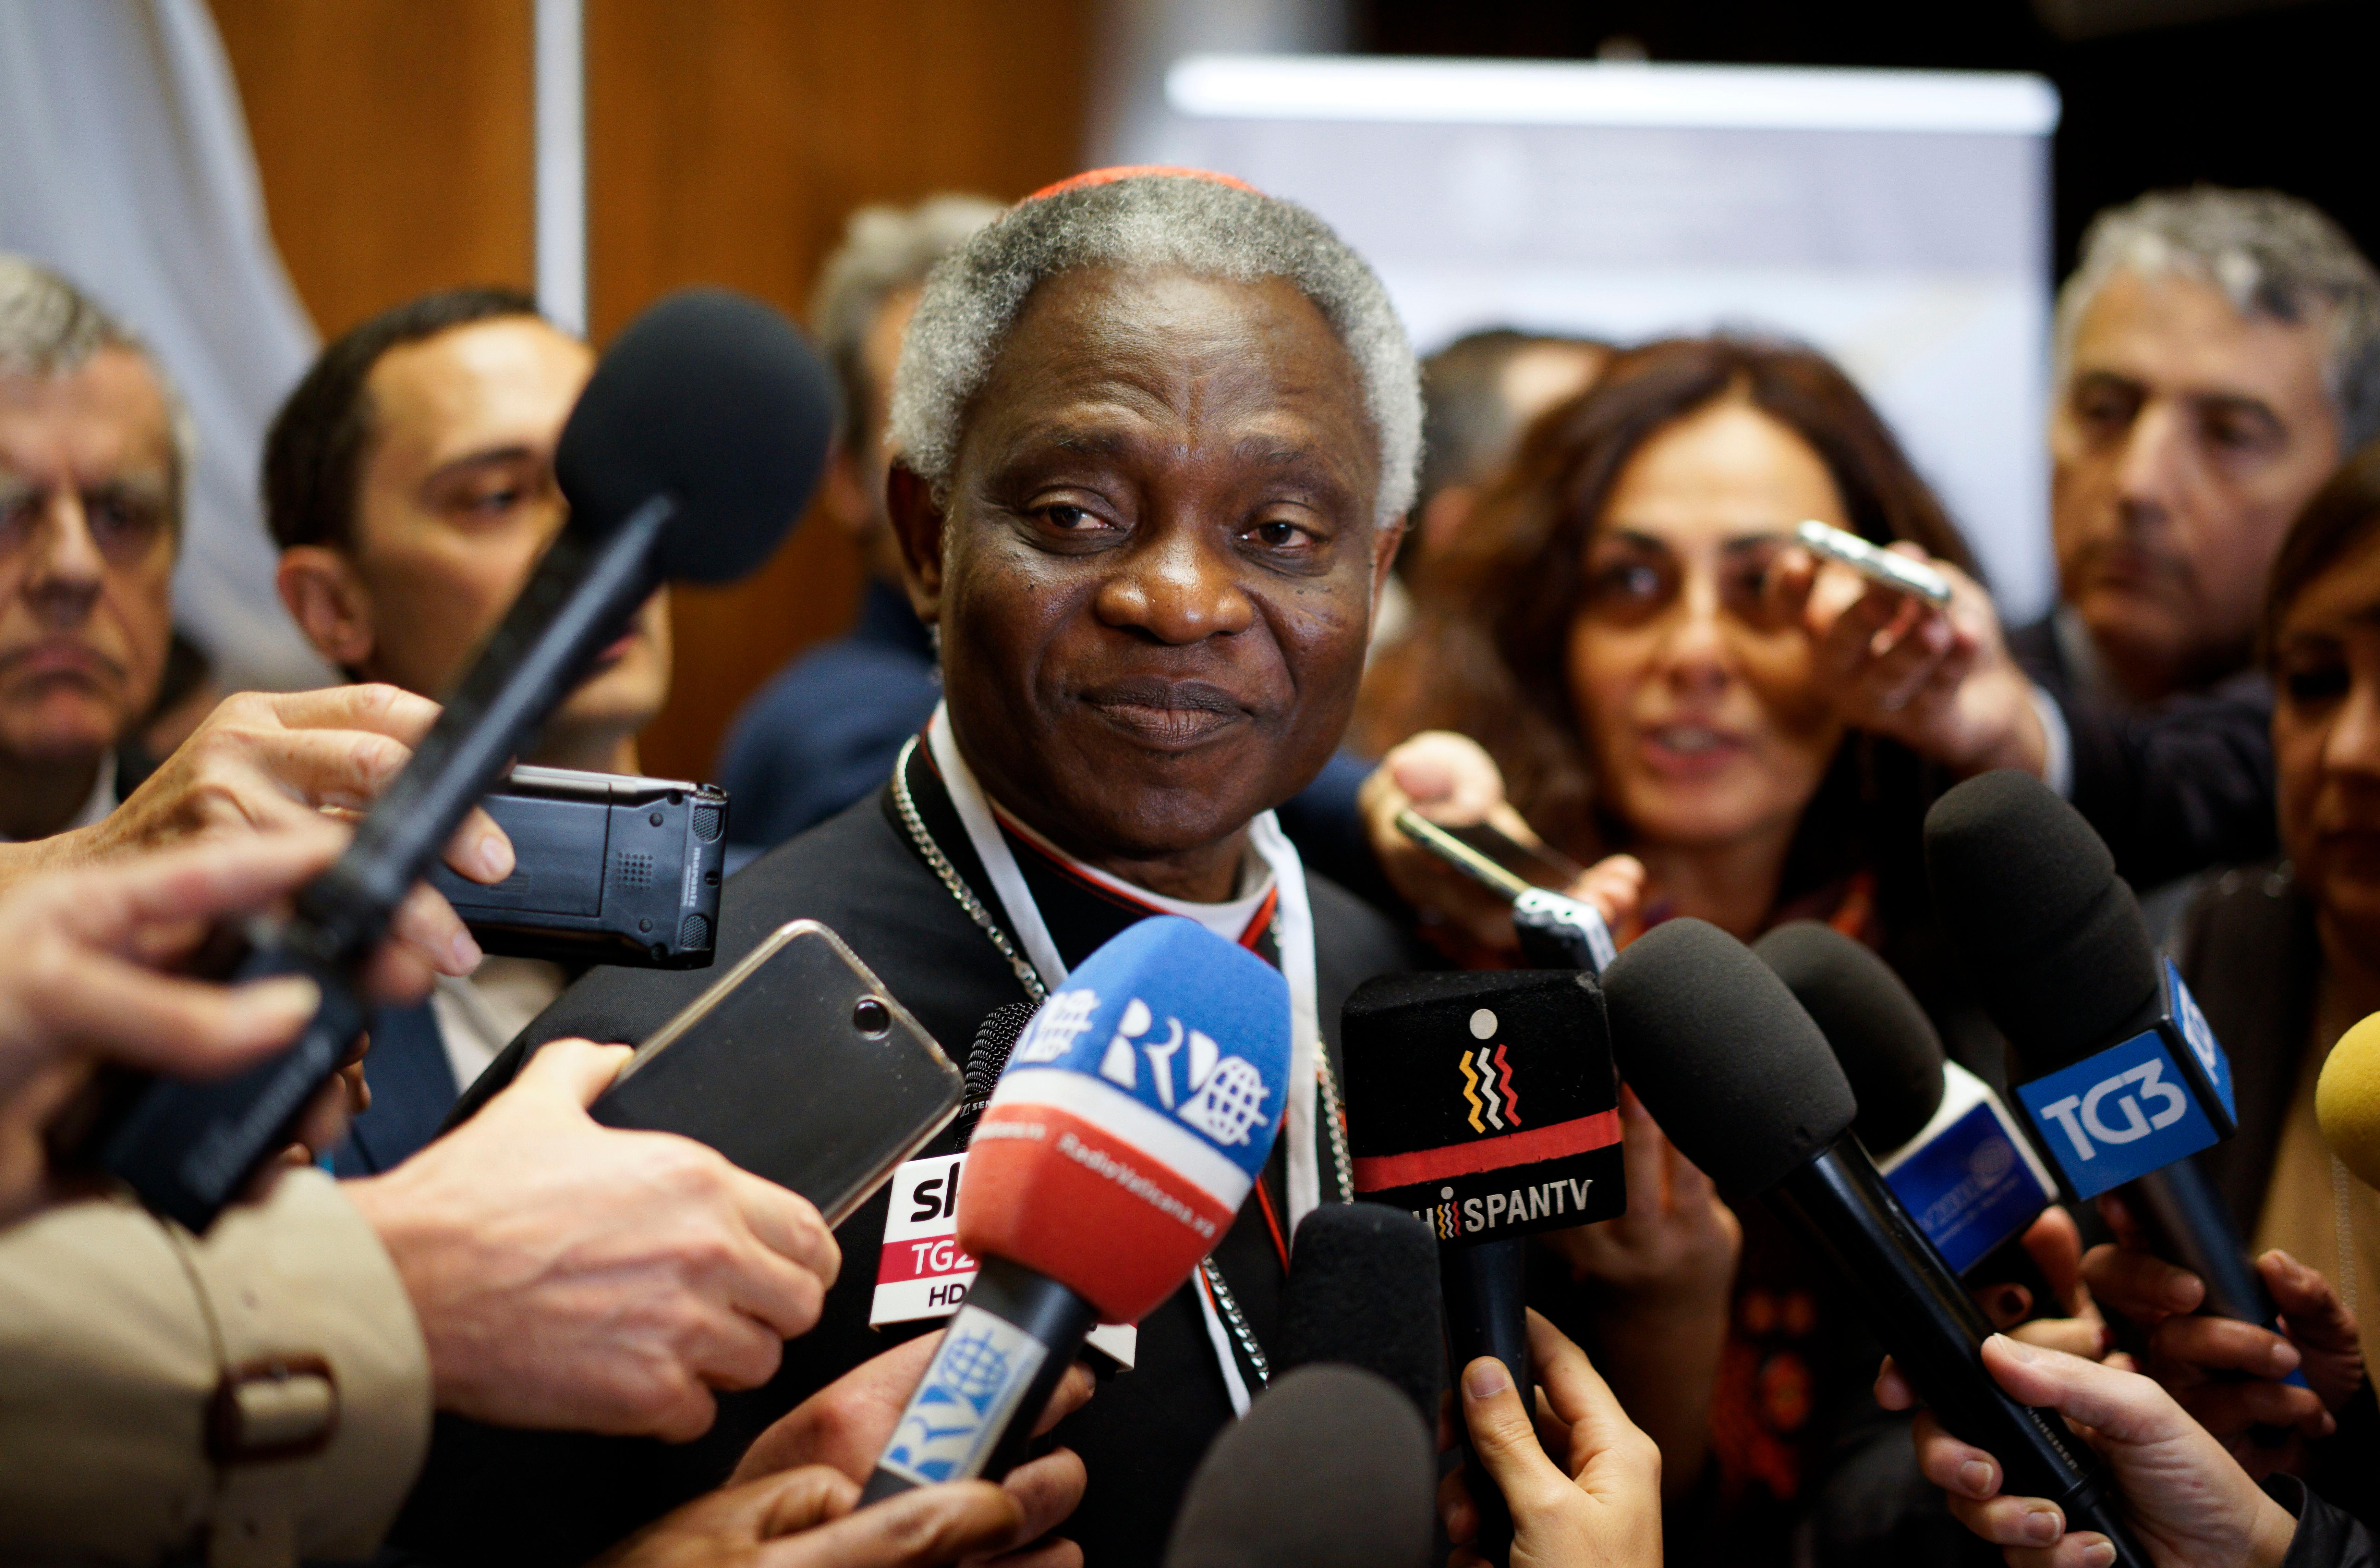 Cardinal Peter Kodwo Appiah Turkson to reporters during a break of a conference on nuclear disarmament, at the Vatican, Friday, Nov. 10, 2017. The Vatican hosted Nobel laureates, U.N. and NATO officials and a handful of nuclear powers at a conference aimed at galvanizing support for a global shift from the Cold War era policy of nuclear deterrence to one of total nuclear disarmament.(AP Photo/Andrew Medichini3